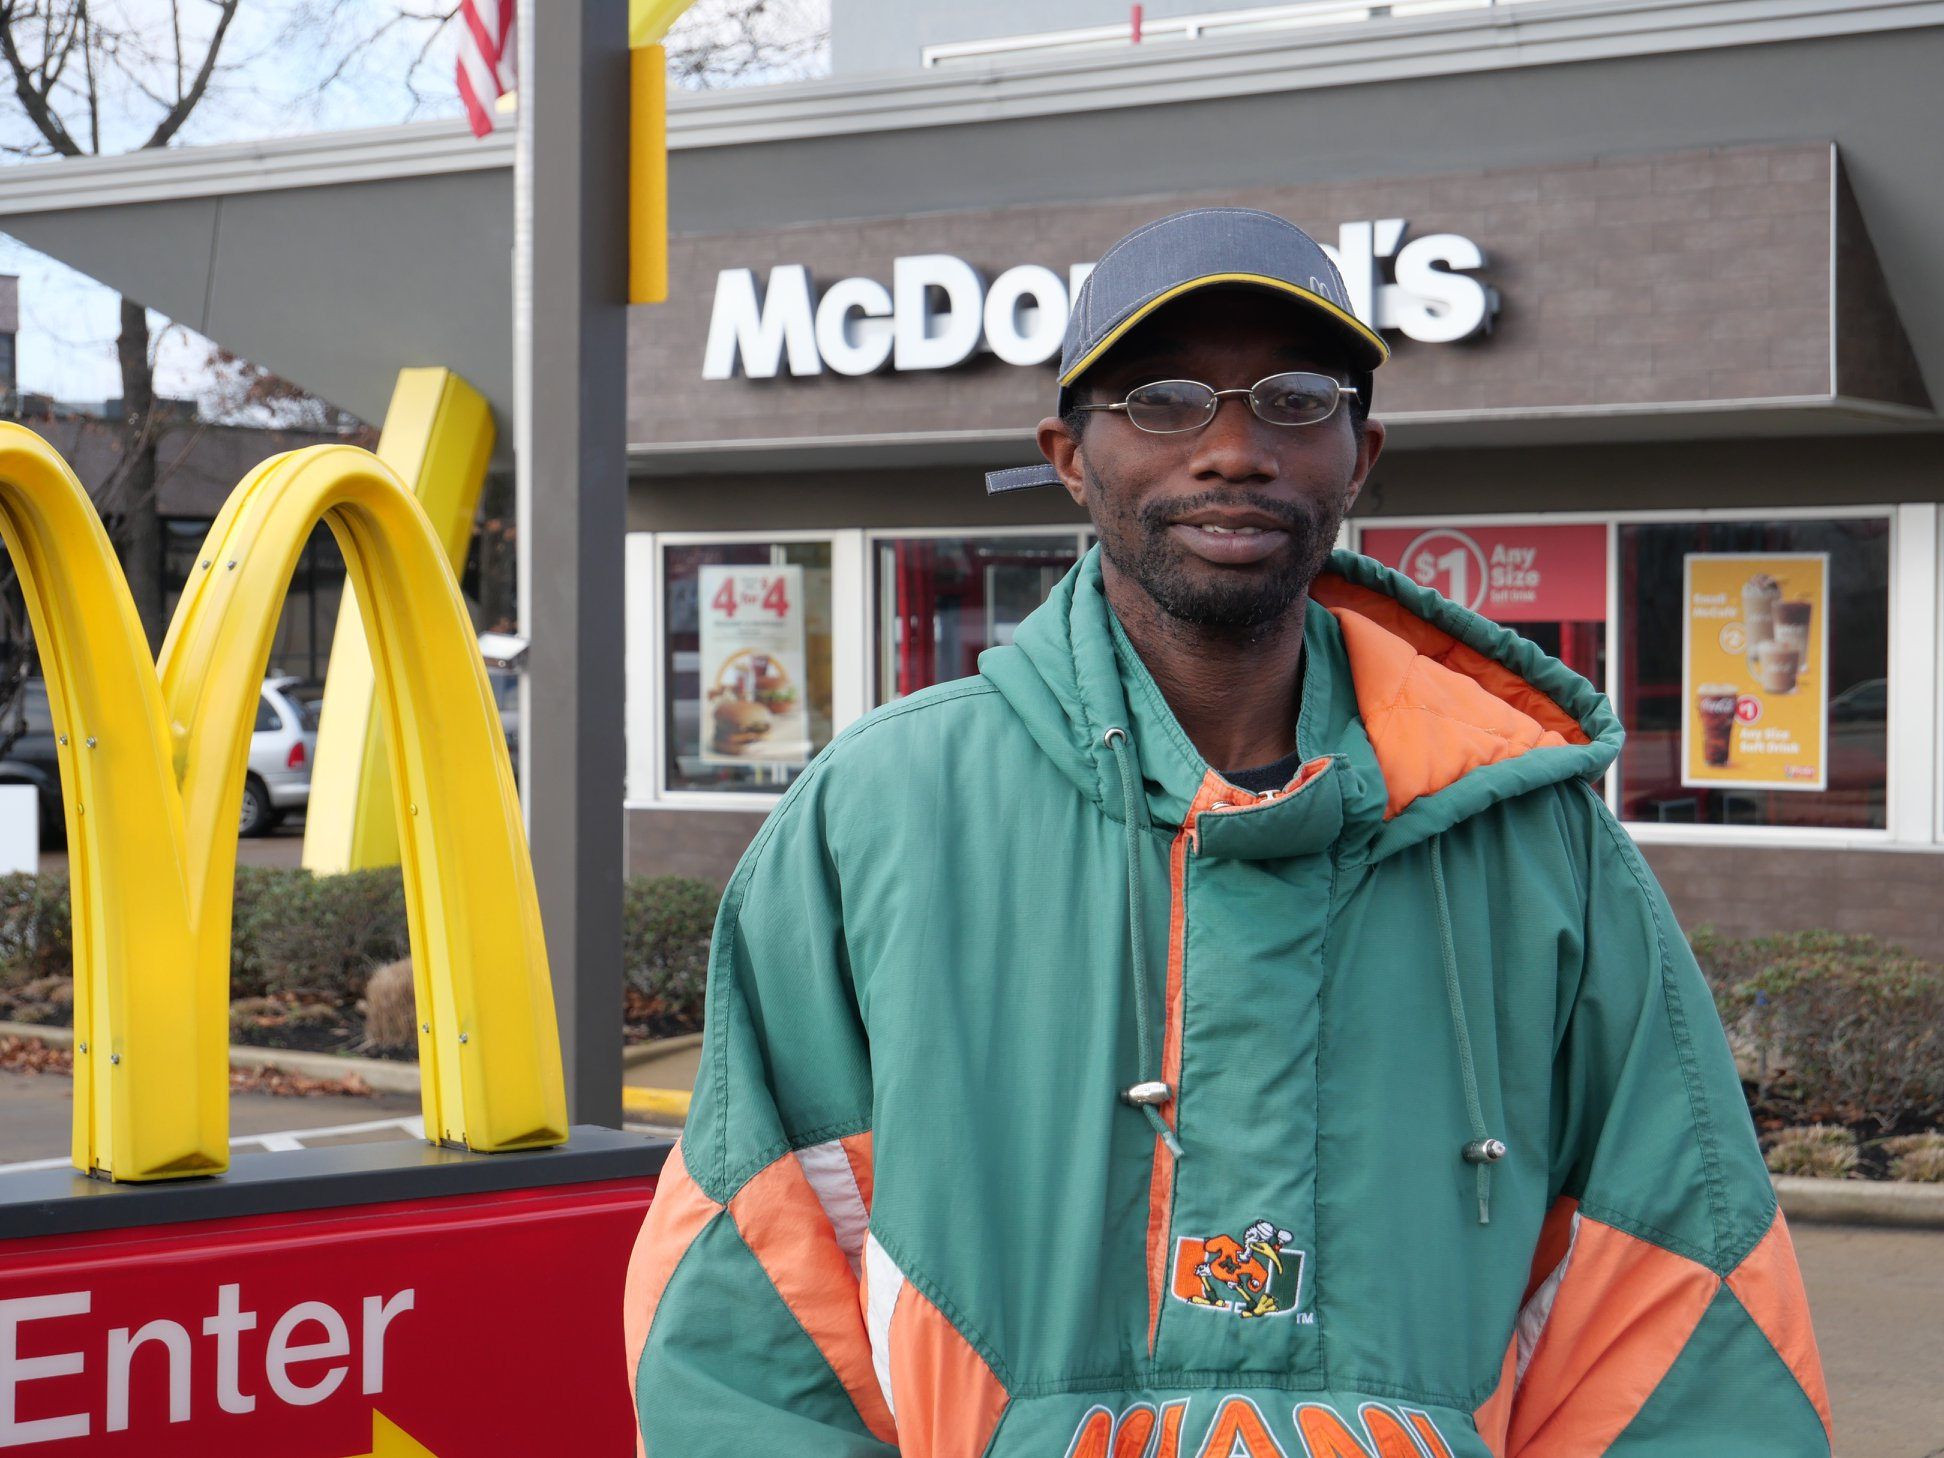 Disabilities should not prevent employment. A photo of Travis, smiling in front of his employer, McDonald's.